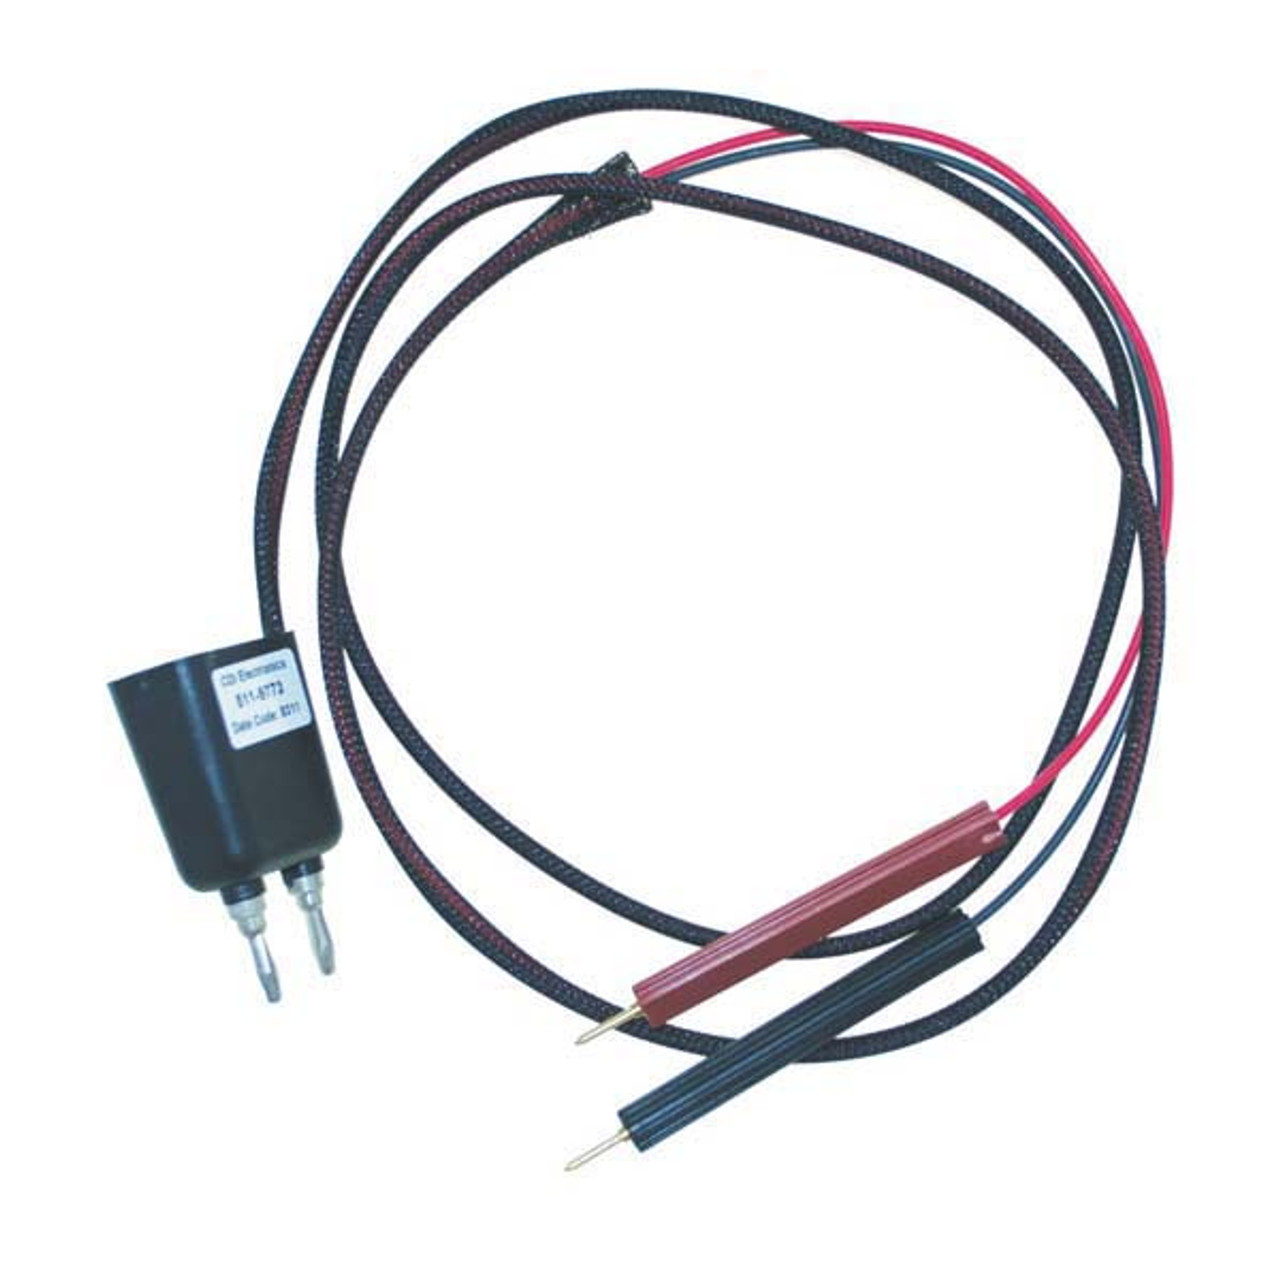 CDI 511-9773 DVA Adapter - Leads included